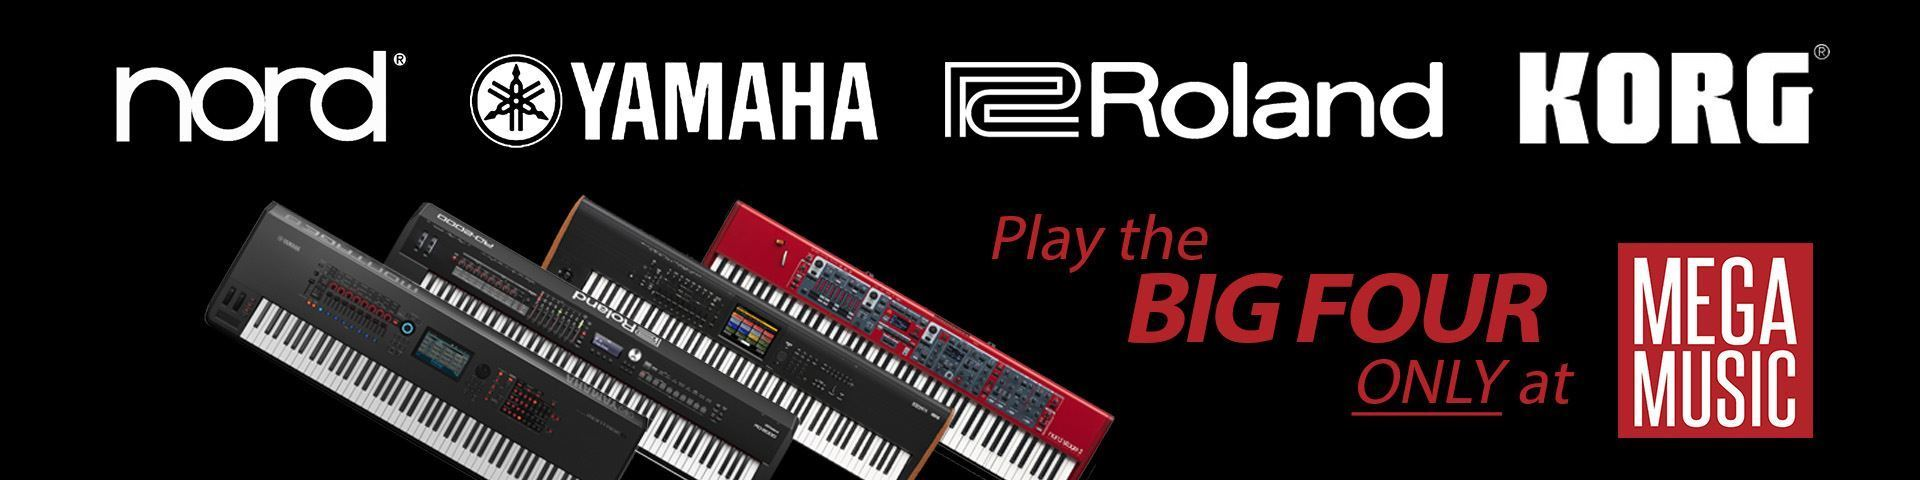 Nord, Yamaha, Roland and Korg - only available at Mega Music